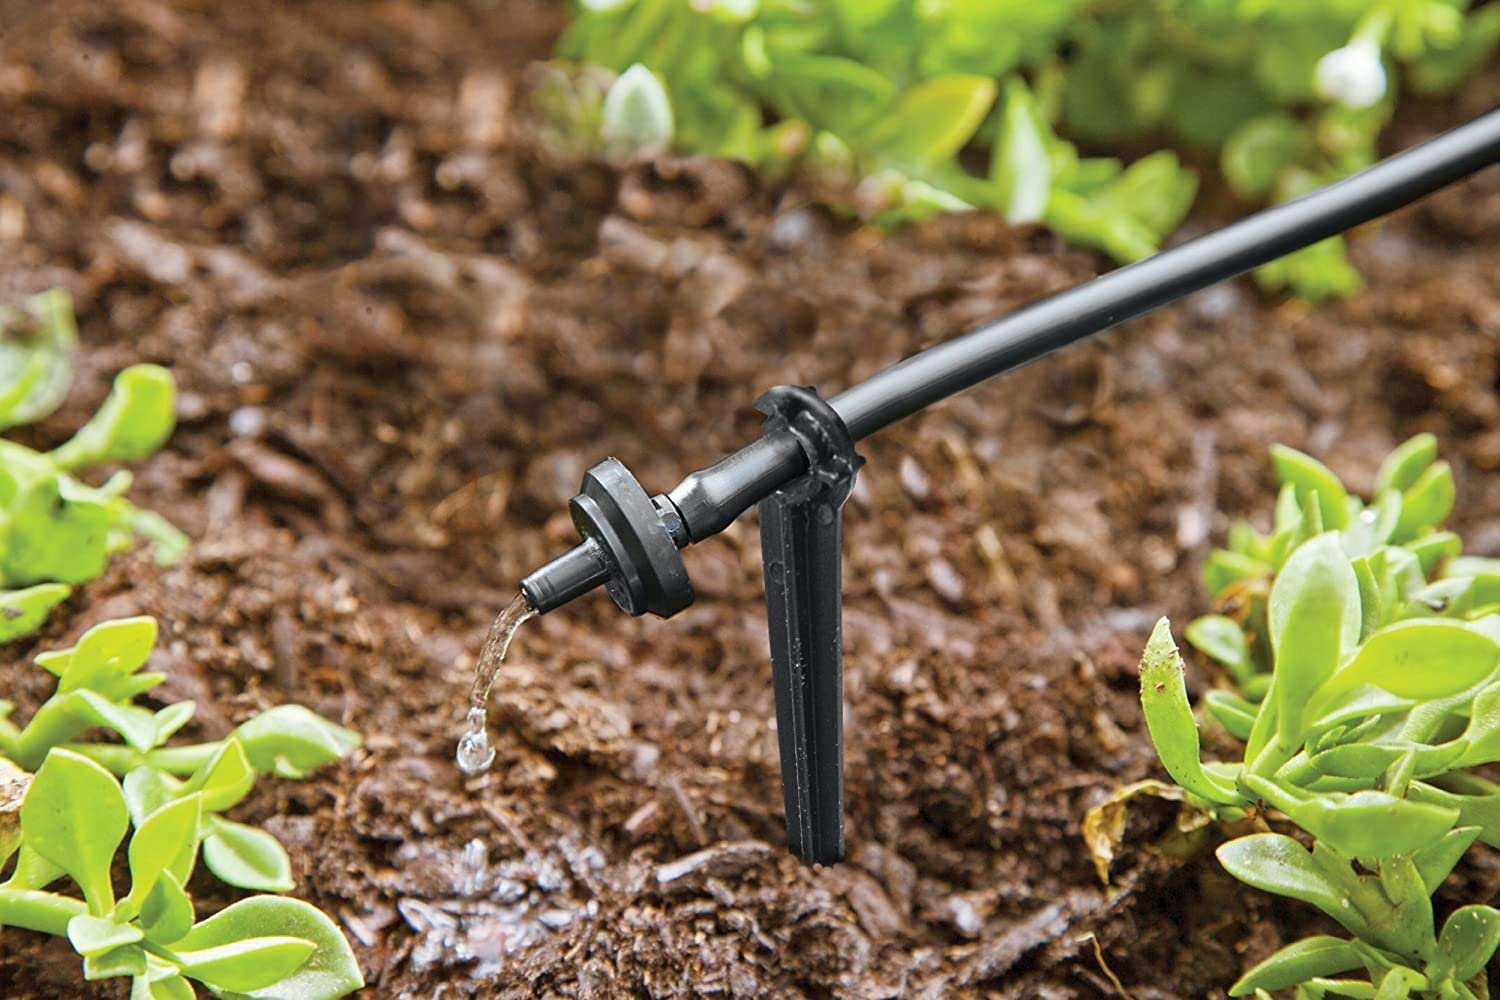 Drip irrigation horticulture products